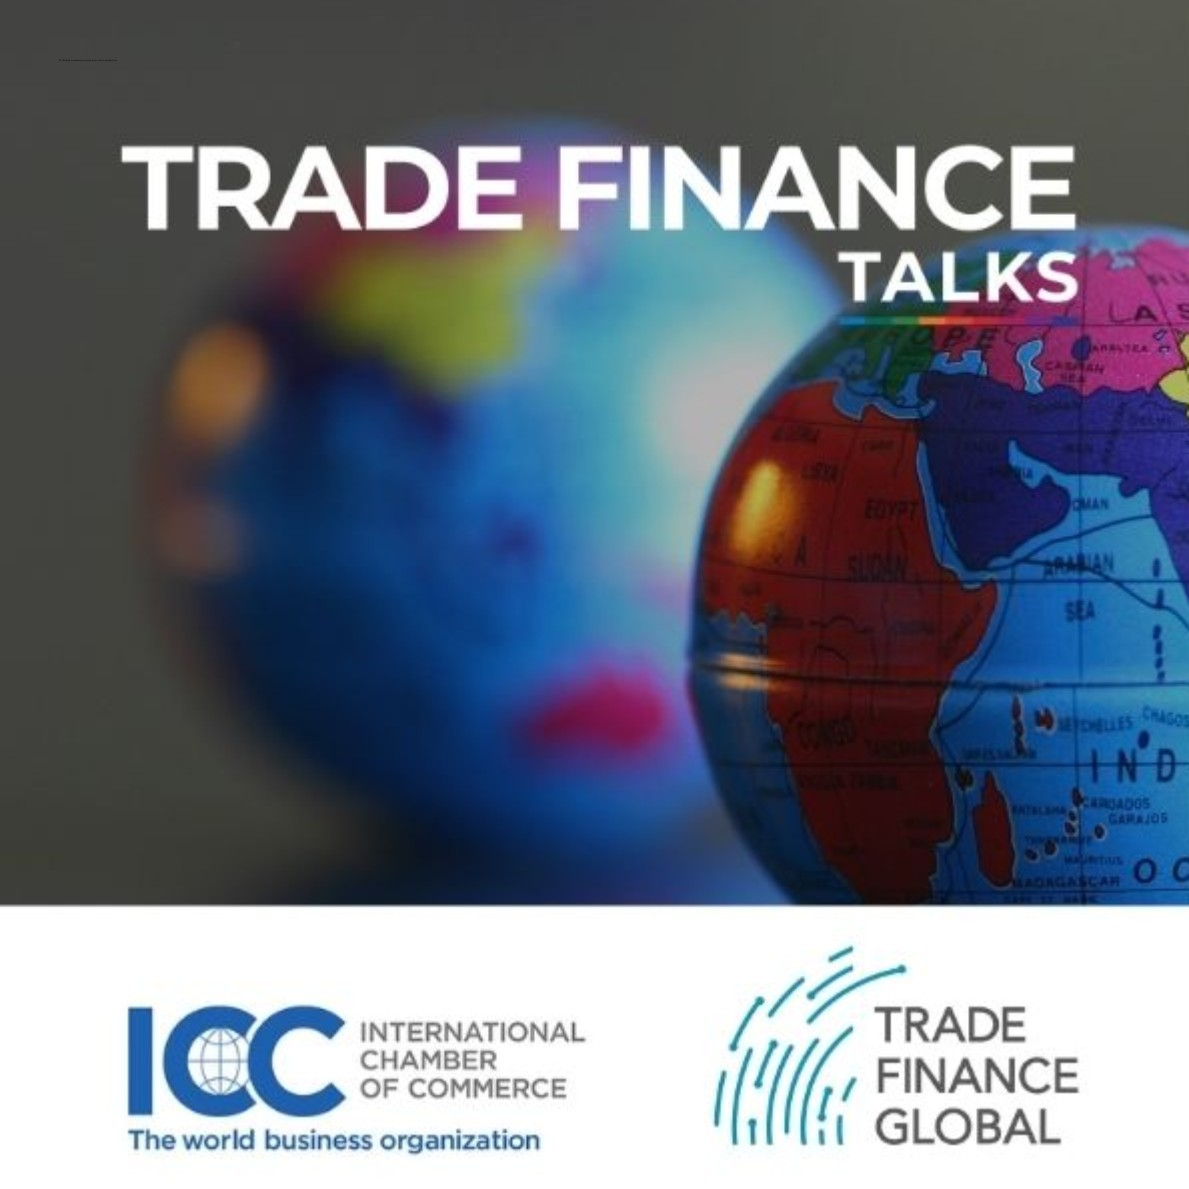 ICC Banking Commission's Lynn Ng on the need to simplify trade